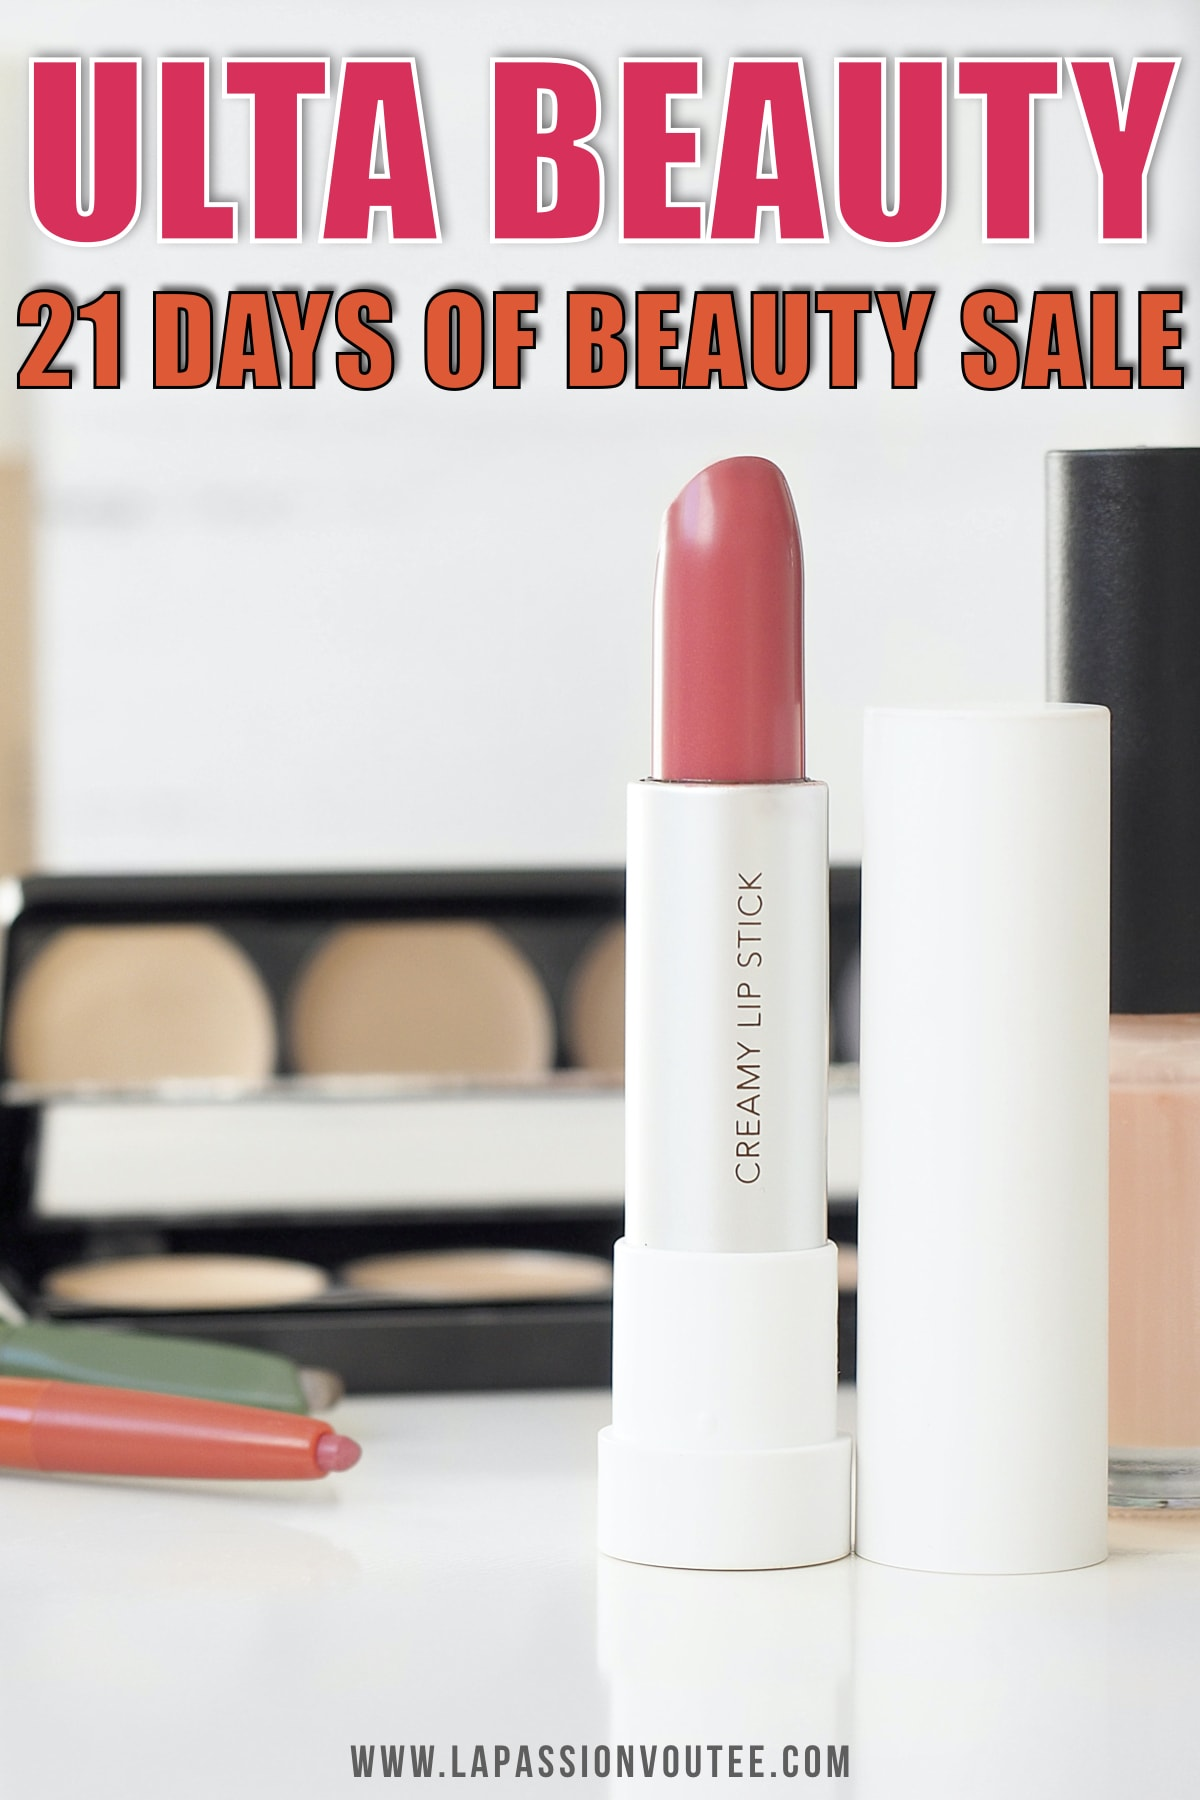 Ulta 21-day beauty sale starts now featuring massive discount on select brands up to 50% off for one day only. This twice a year sale is everything you need to stuck up on beauty steals and hot buys. Here are our top recommendations.